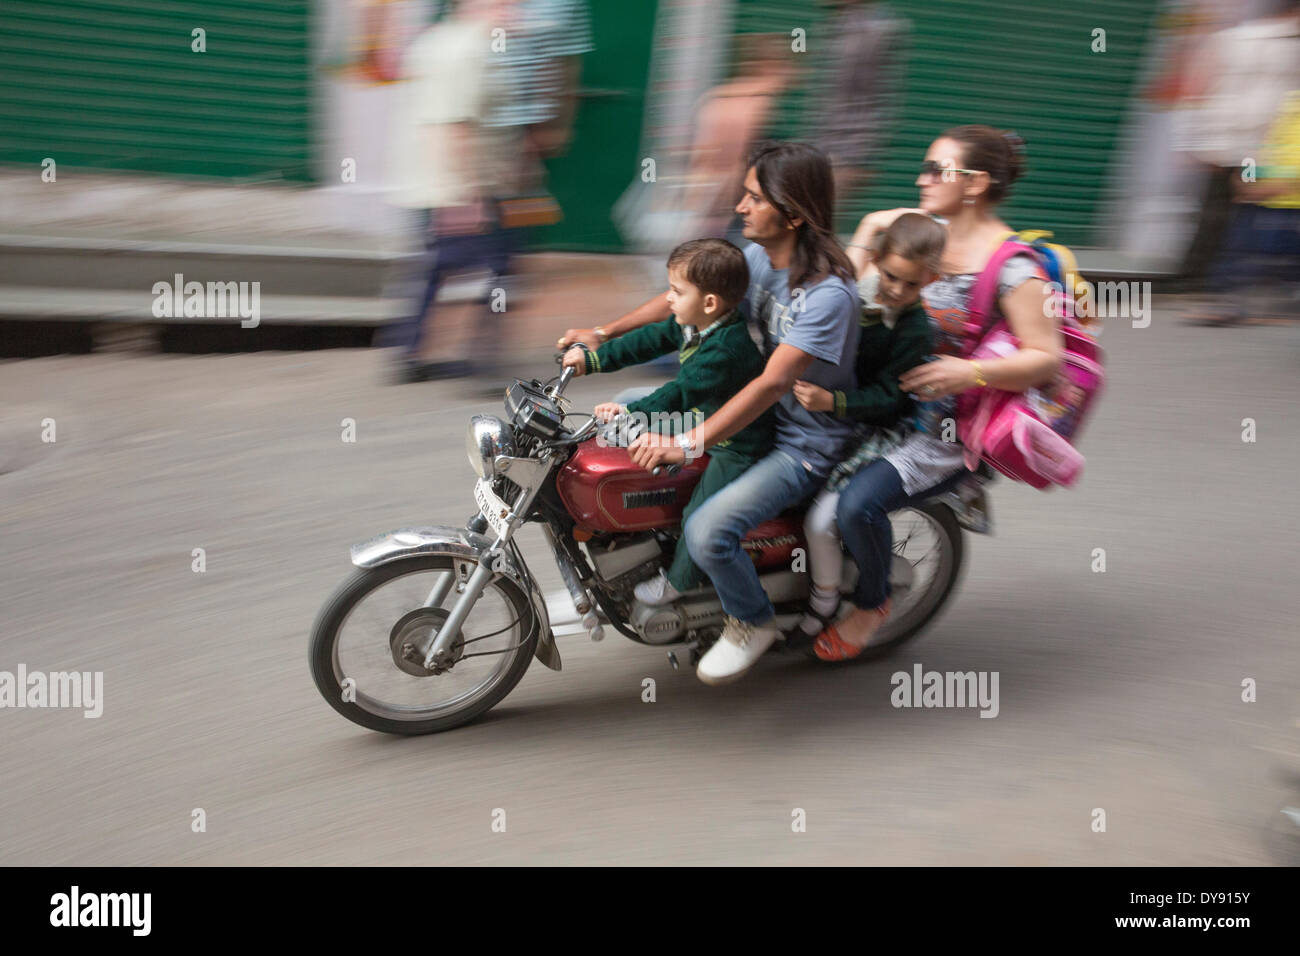 Motorcycle, Motorbike, driving, India, Asia, traffic, transport, family, dangerous, - Stock Image